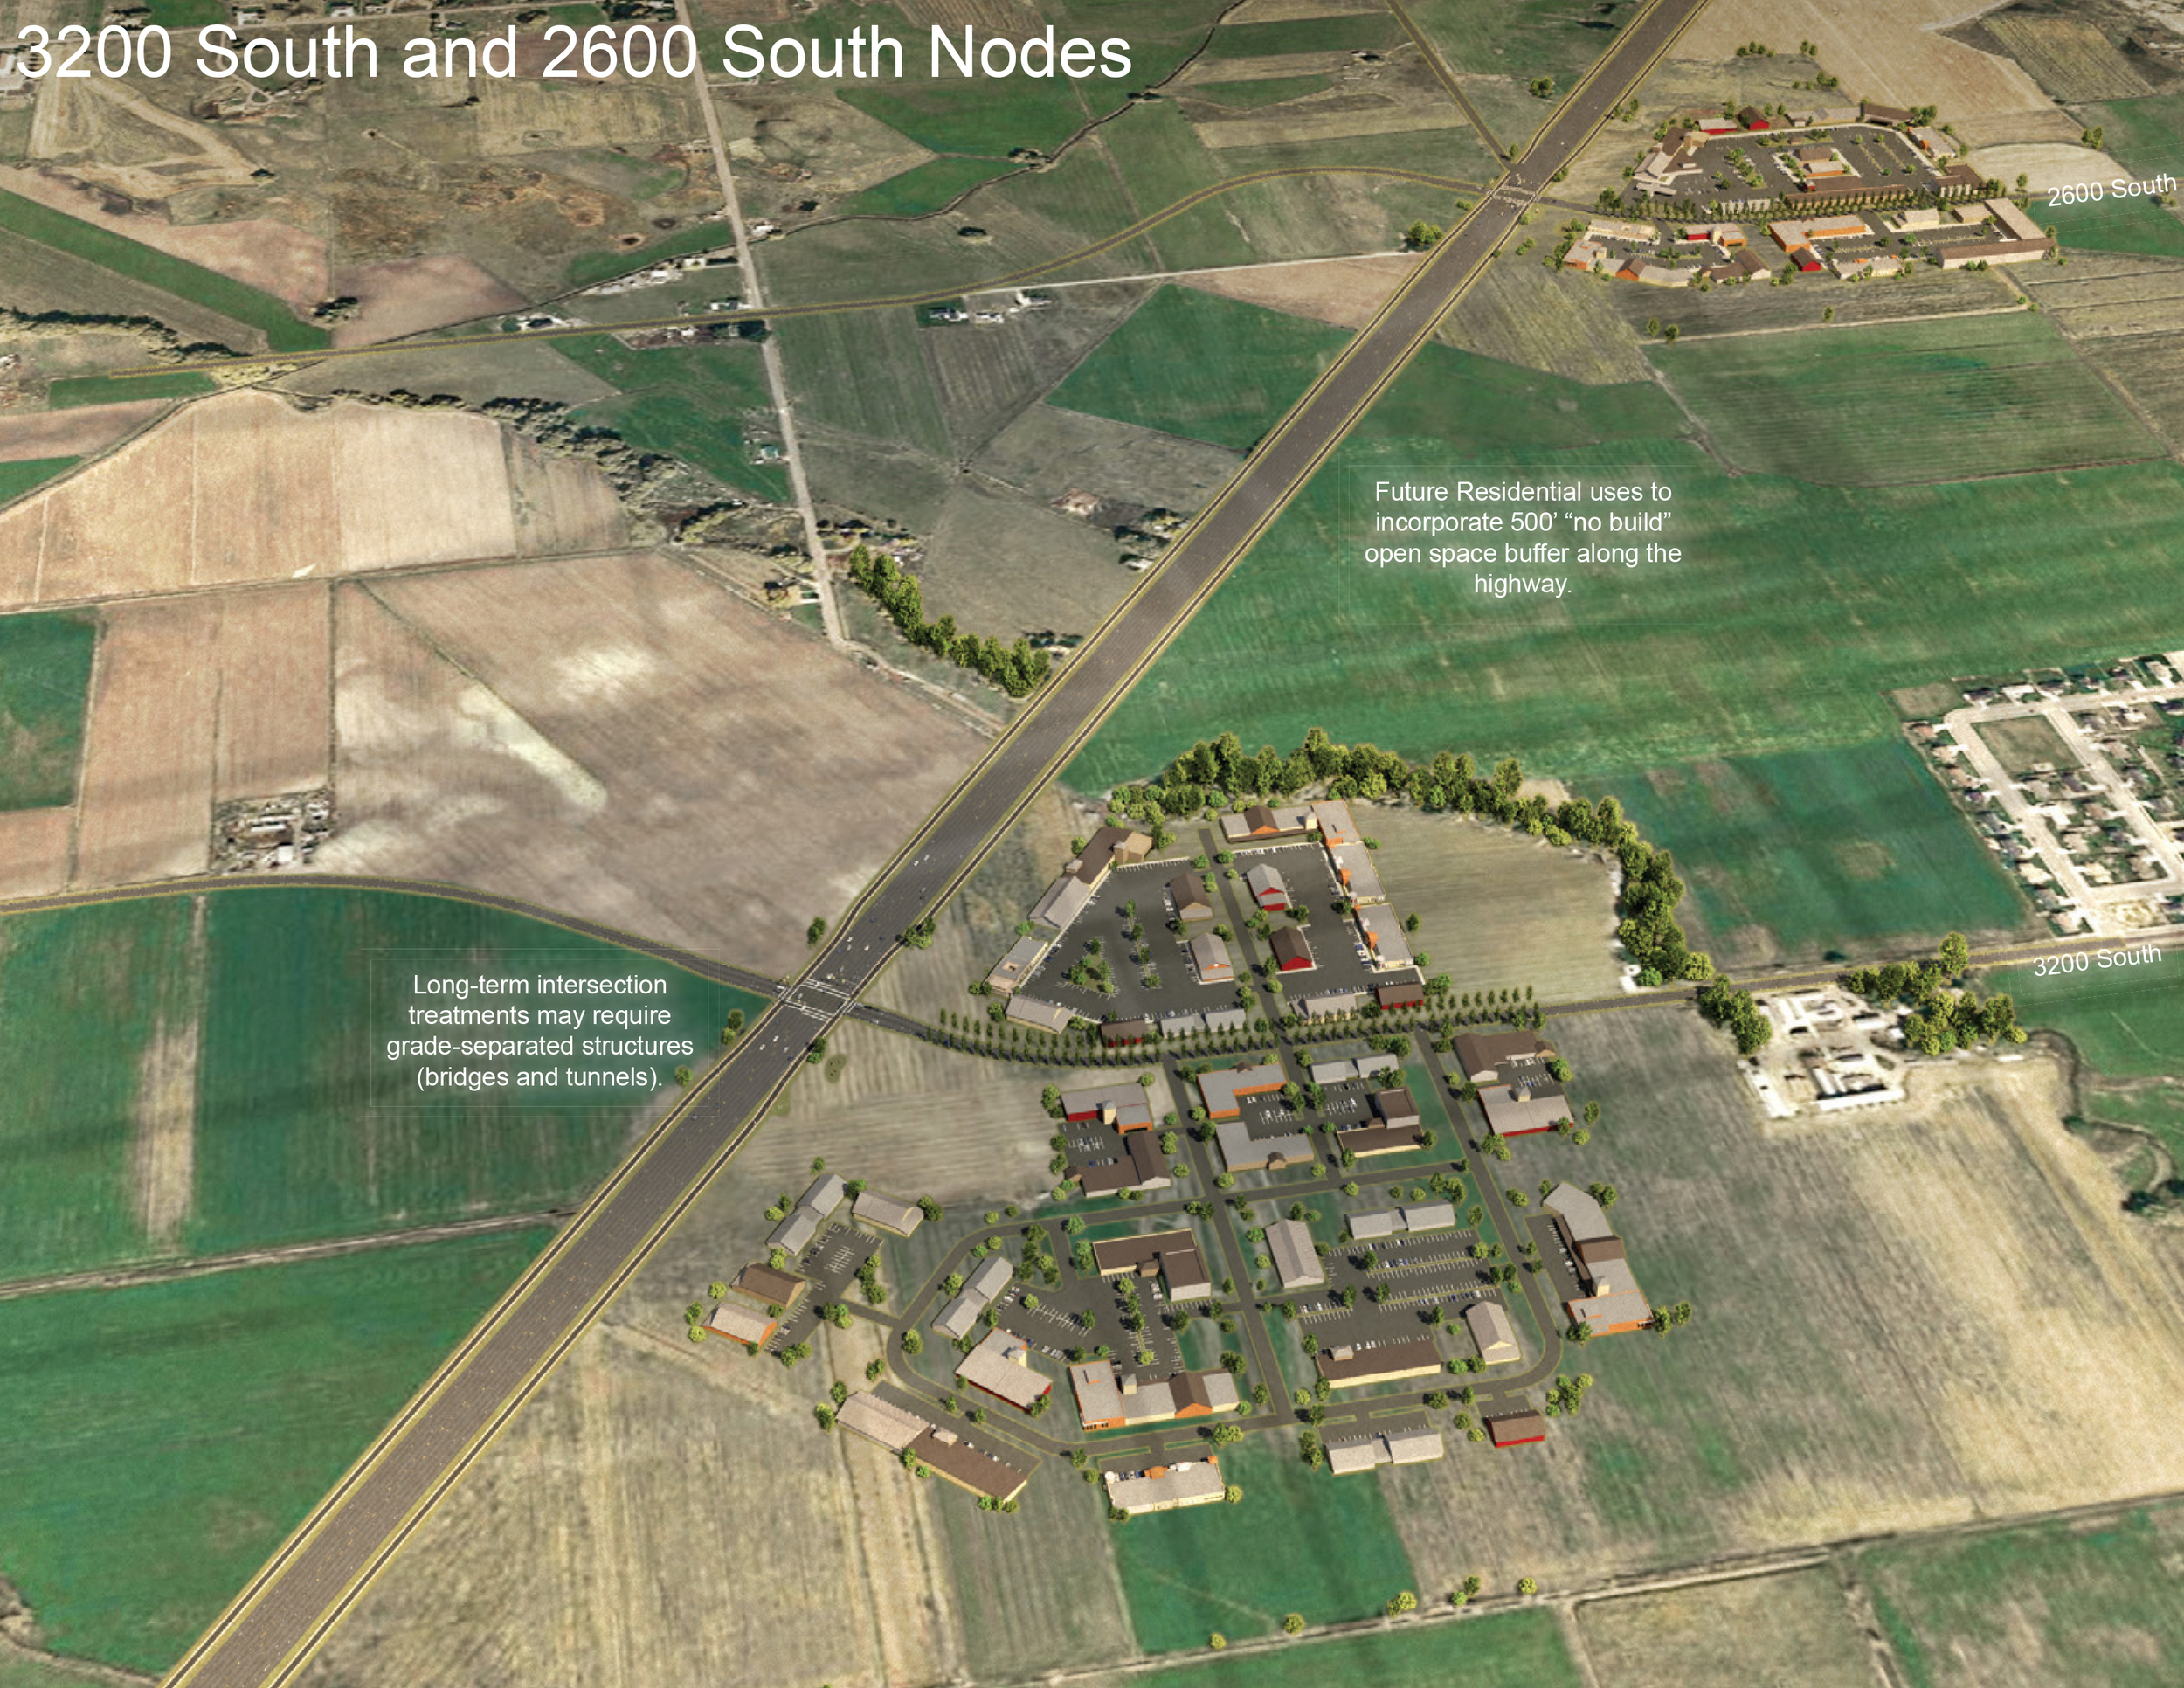 Sparano Mooney Architecture_Project Planning_Cache Valley Corridor Master Plan_3200s and 2600Node.jpg